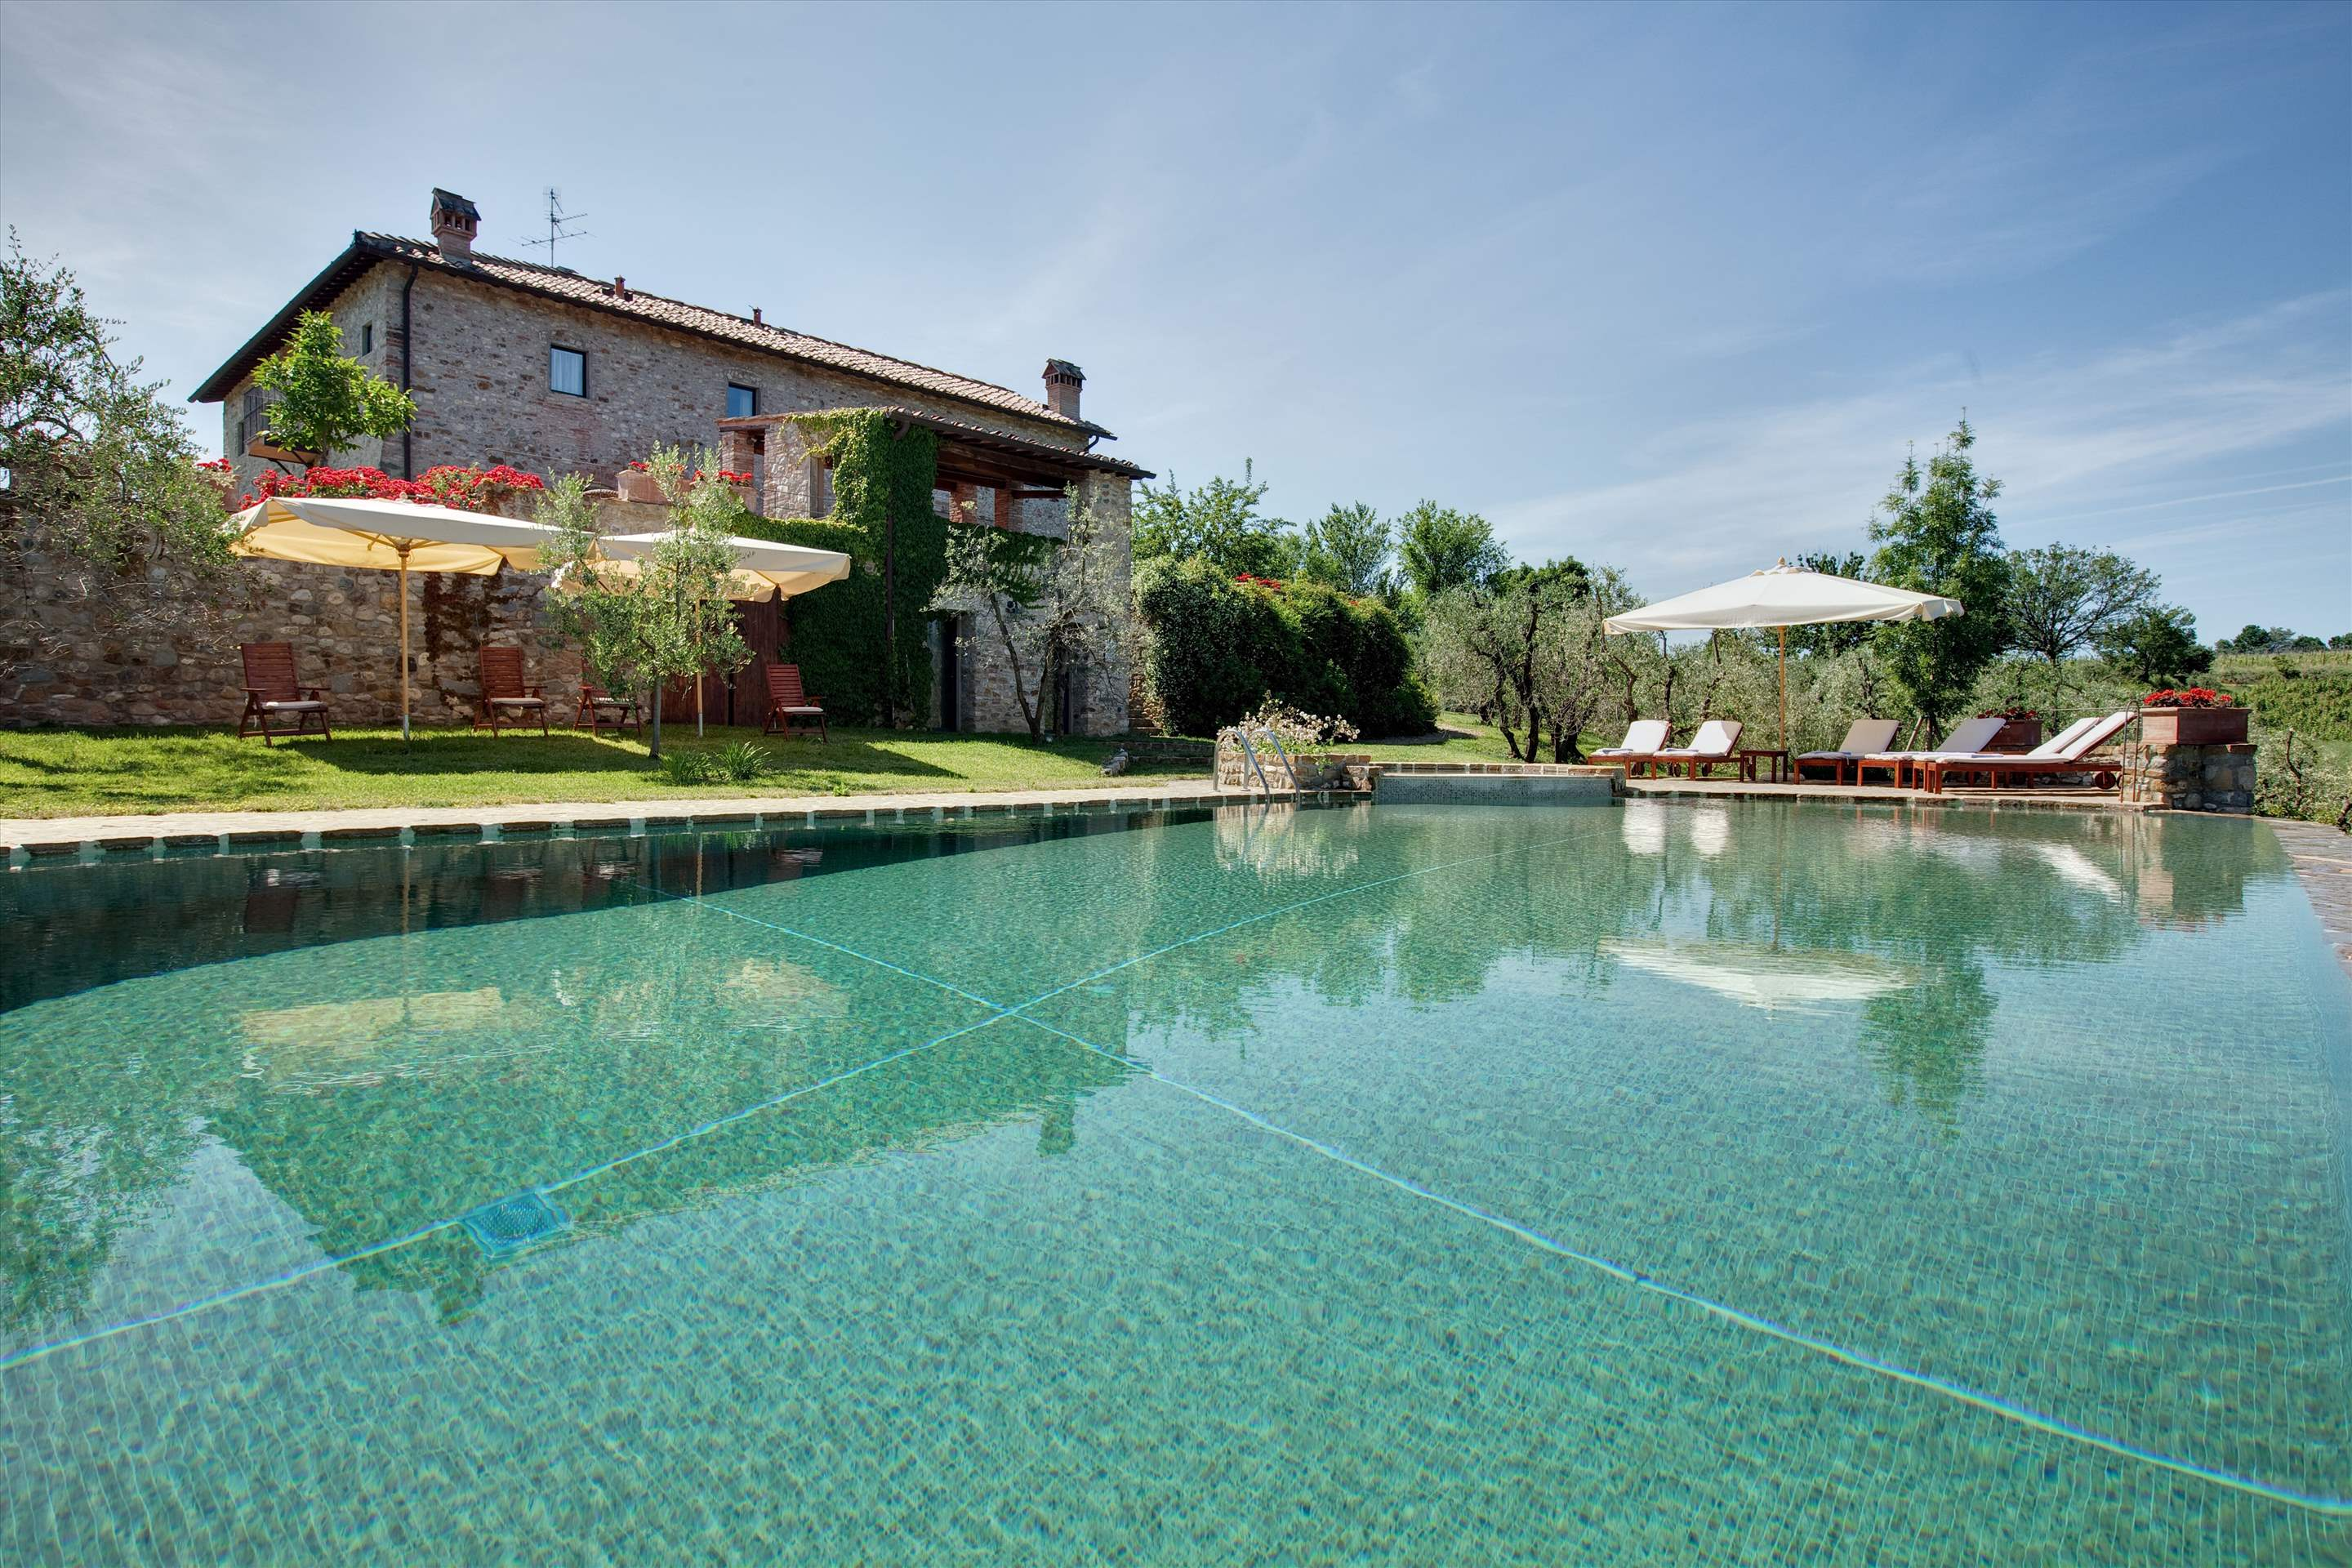 Villa Mercatale, 6 Bedroom rate, 6 bedroom villa in Chianti & Countryside, Tuscany